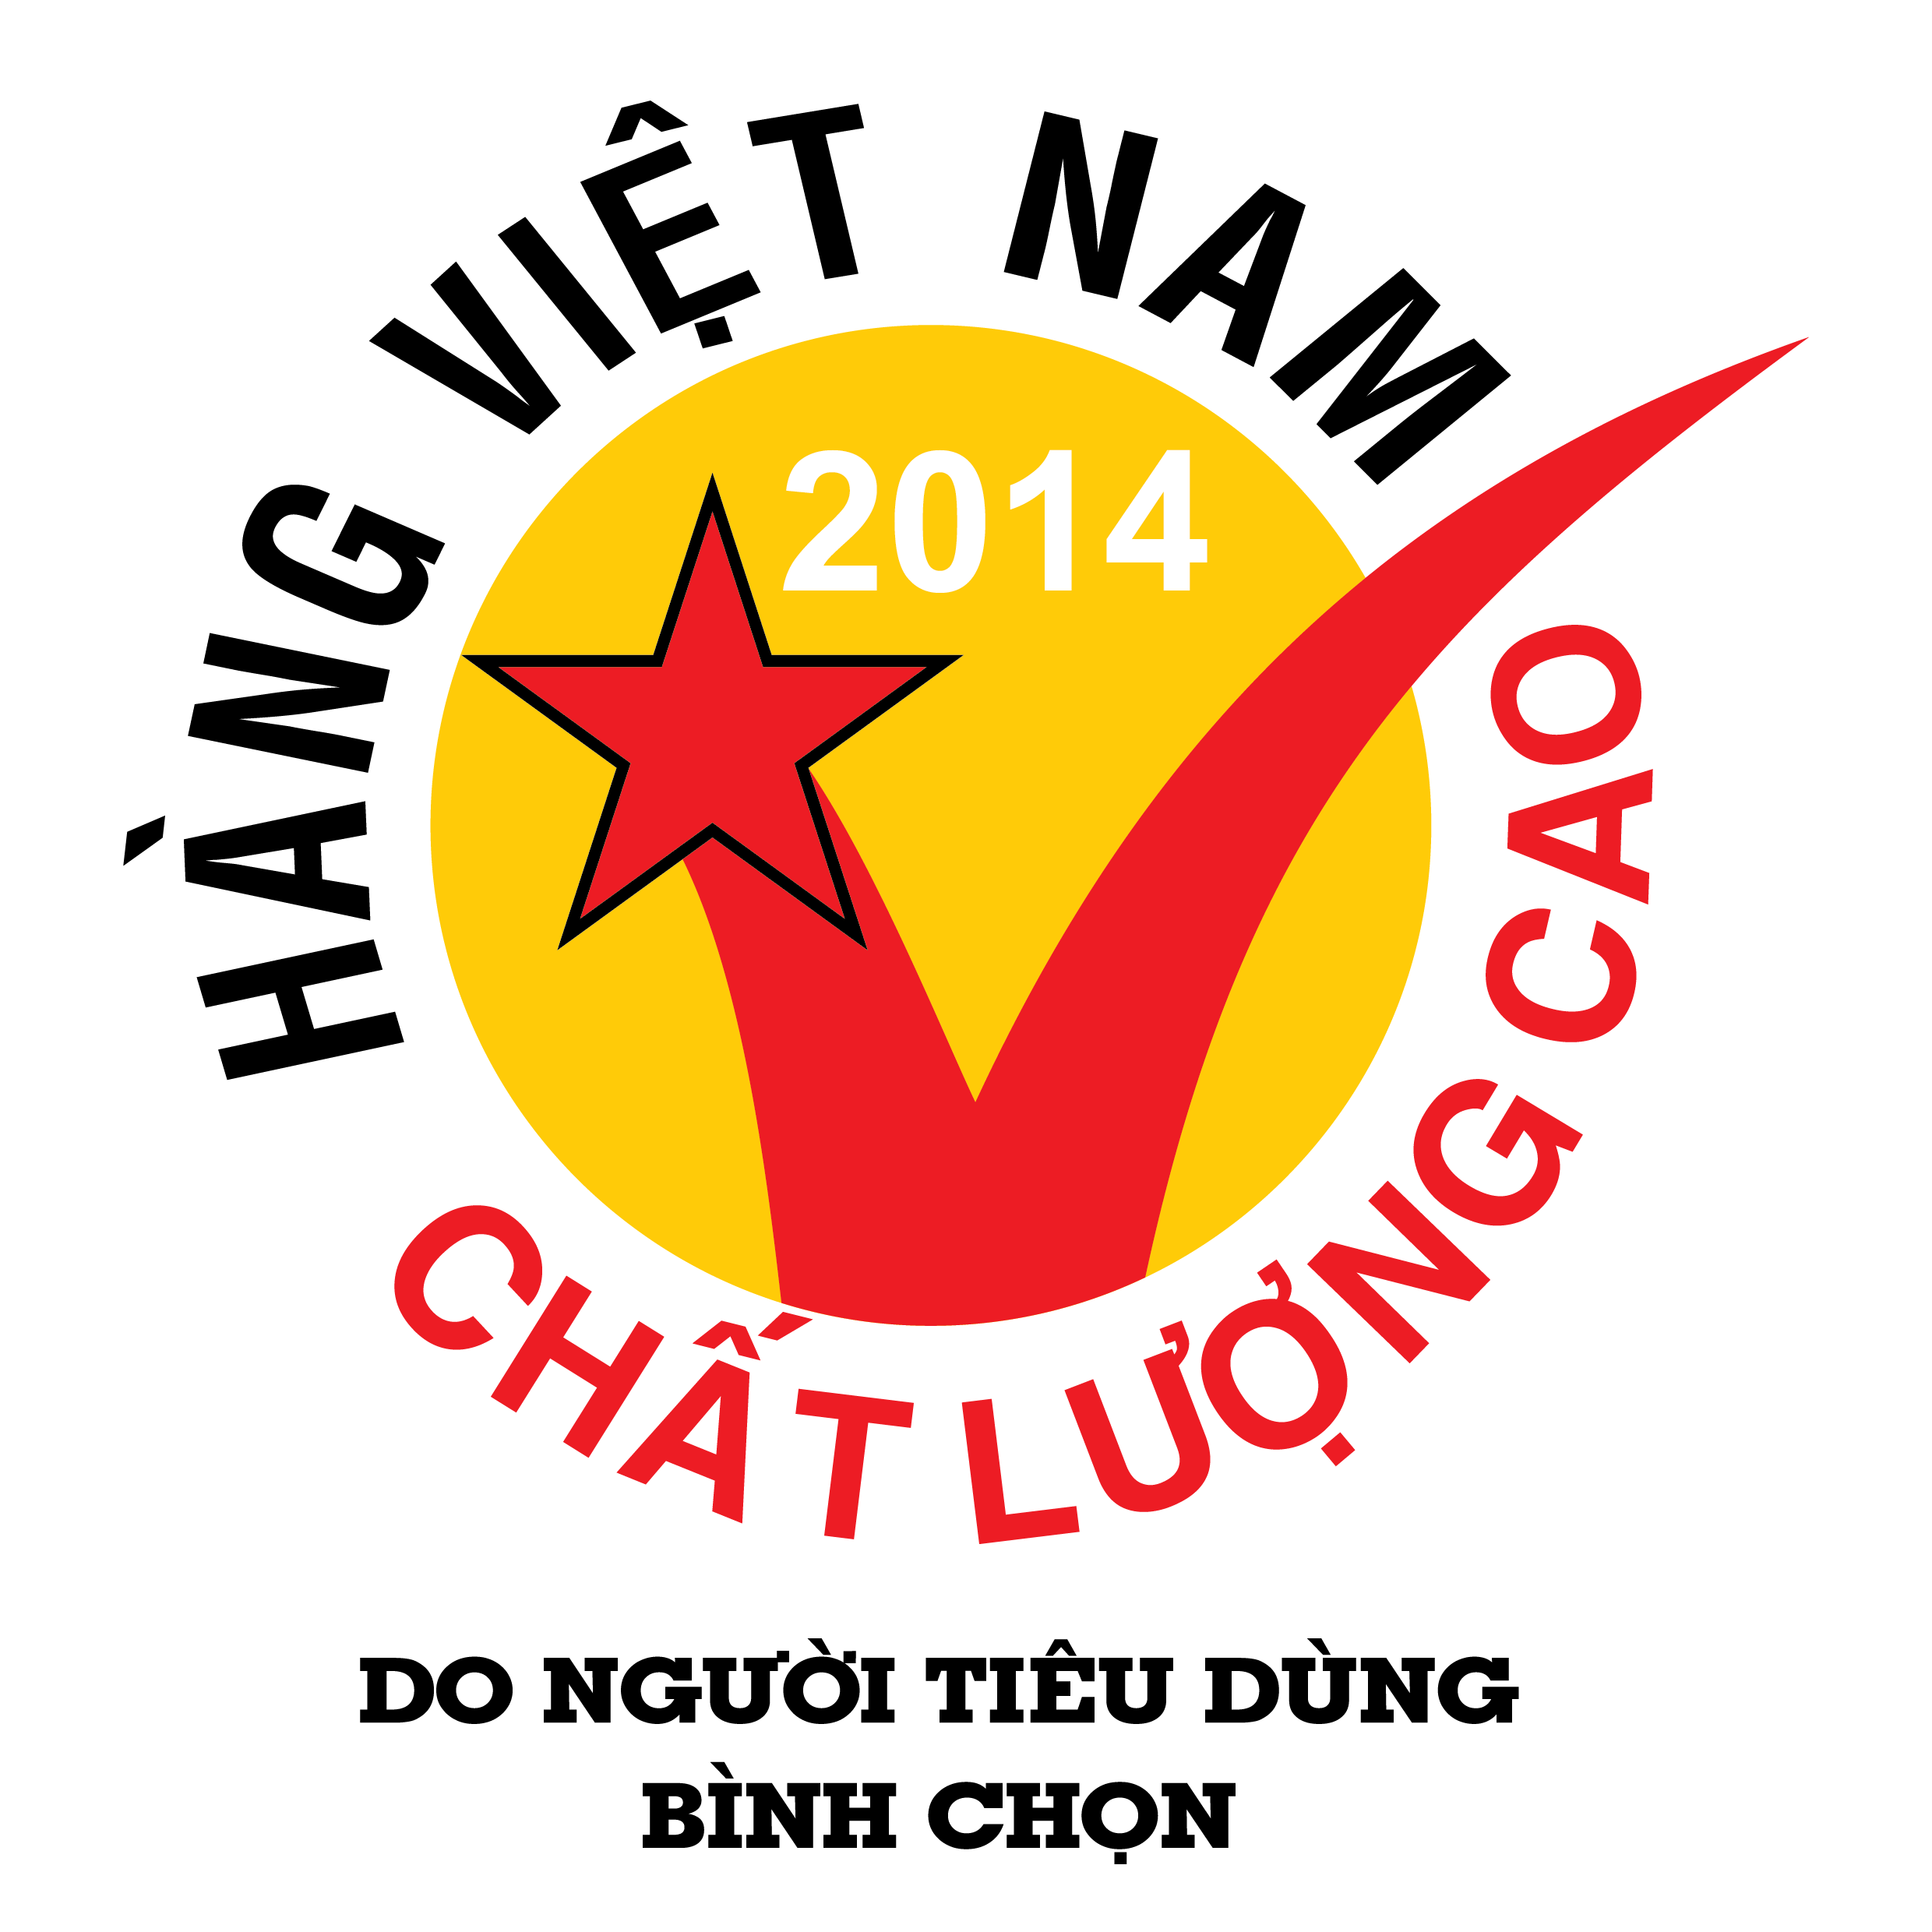 hang viet nam chat luong cao 2014